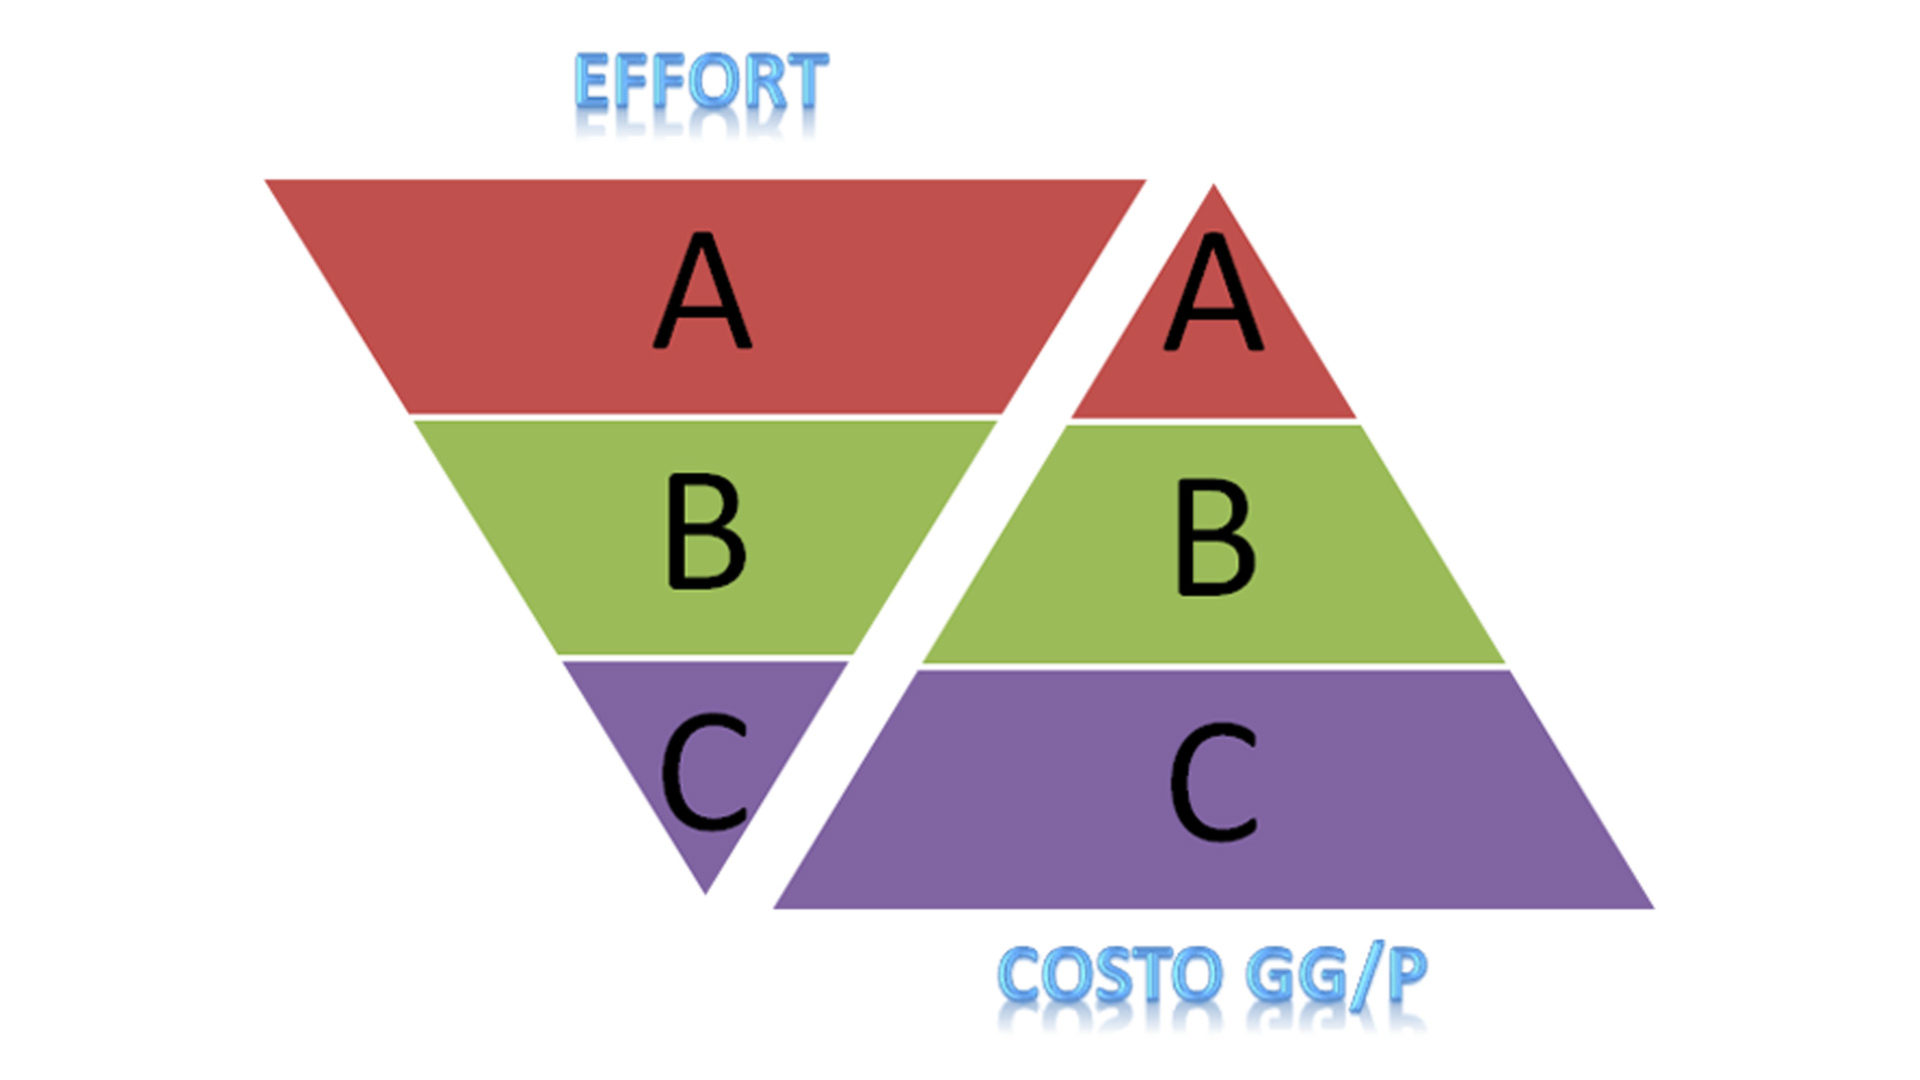 schema effort costi